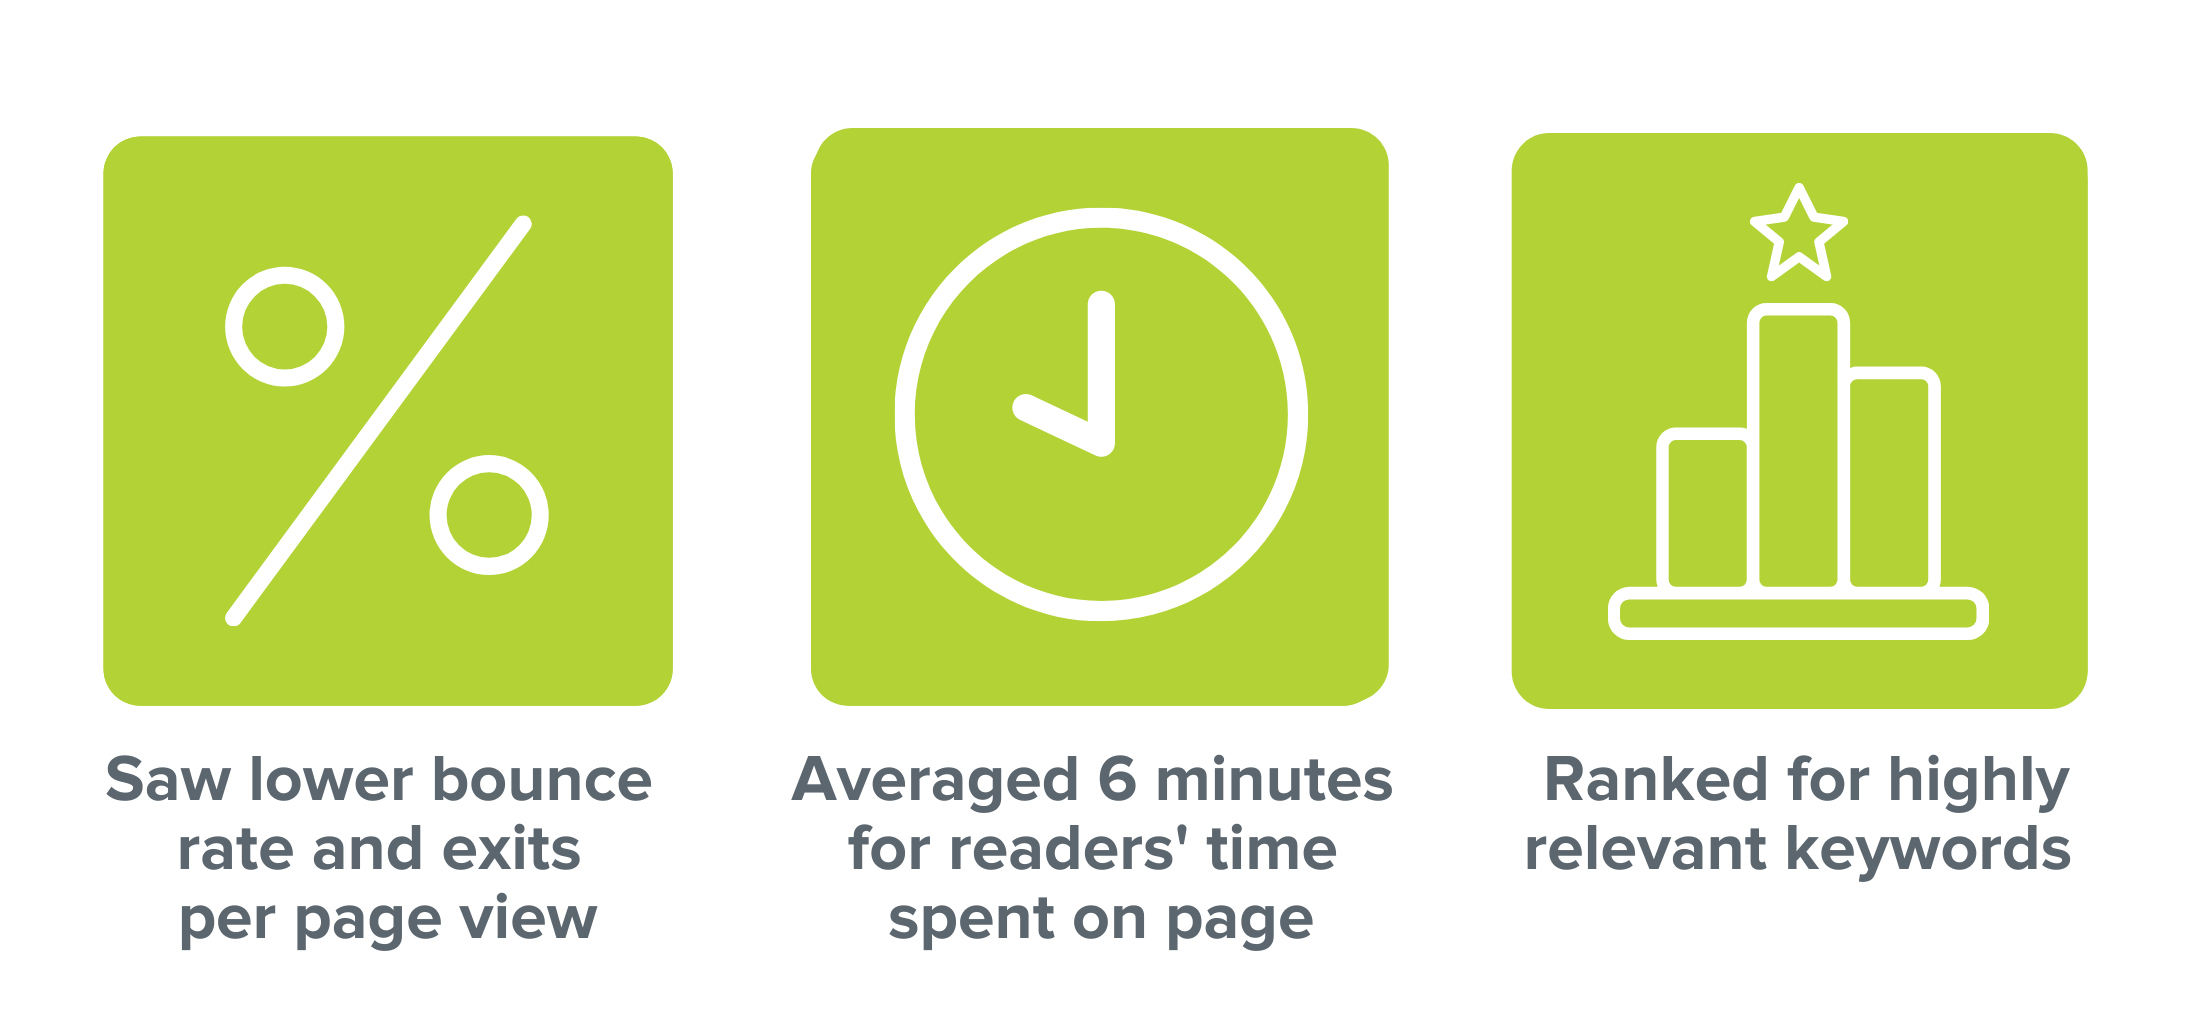 Saw lower bounce rate and exits per page view. Averaged 6 minutes for readers' time spent on page. Ranked for highly relevant keywords.